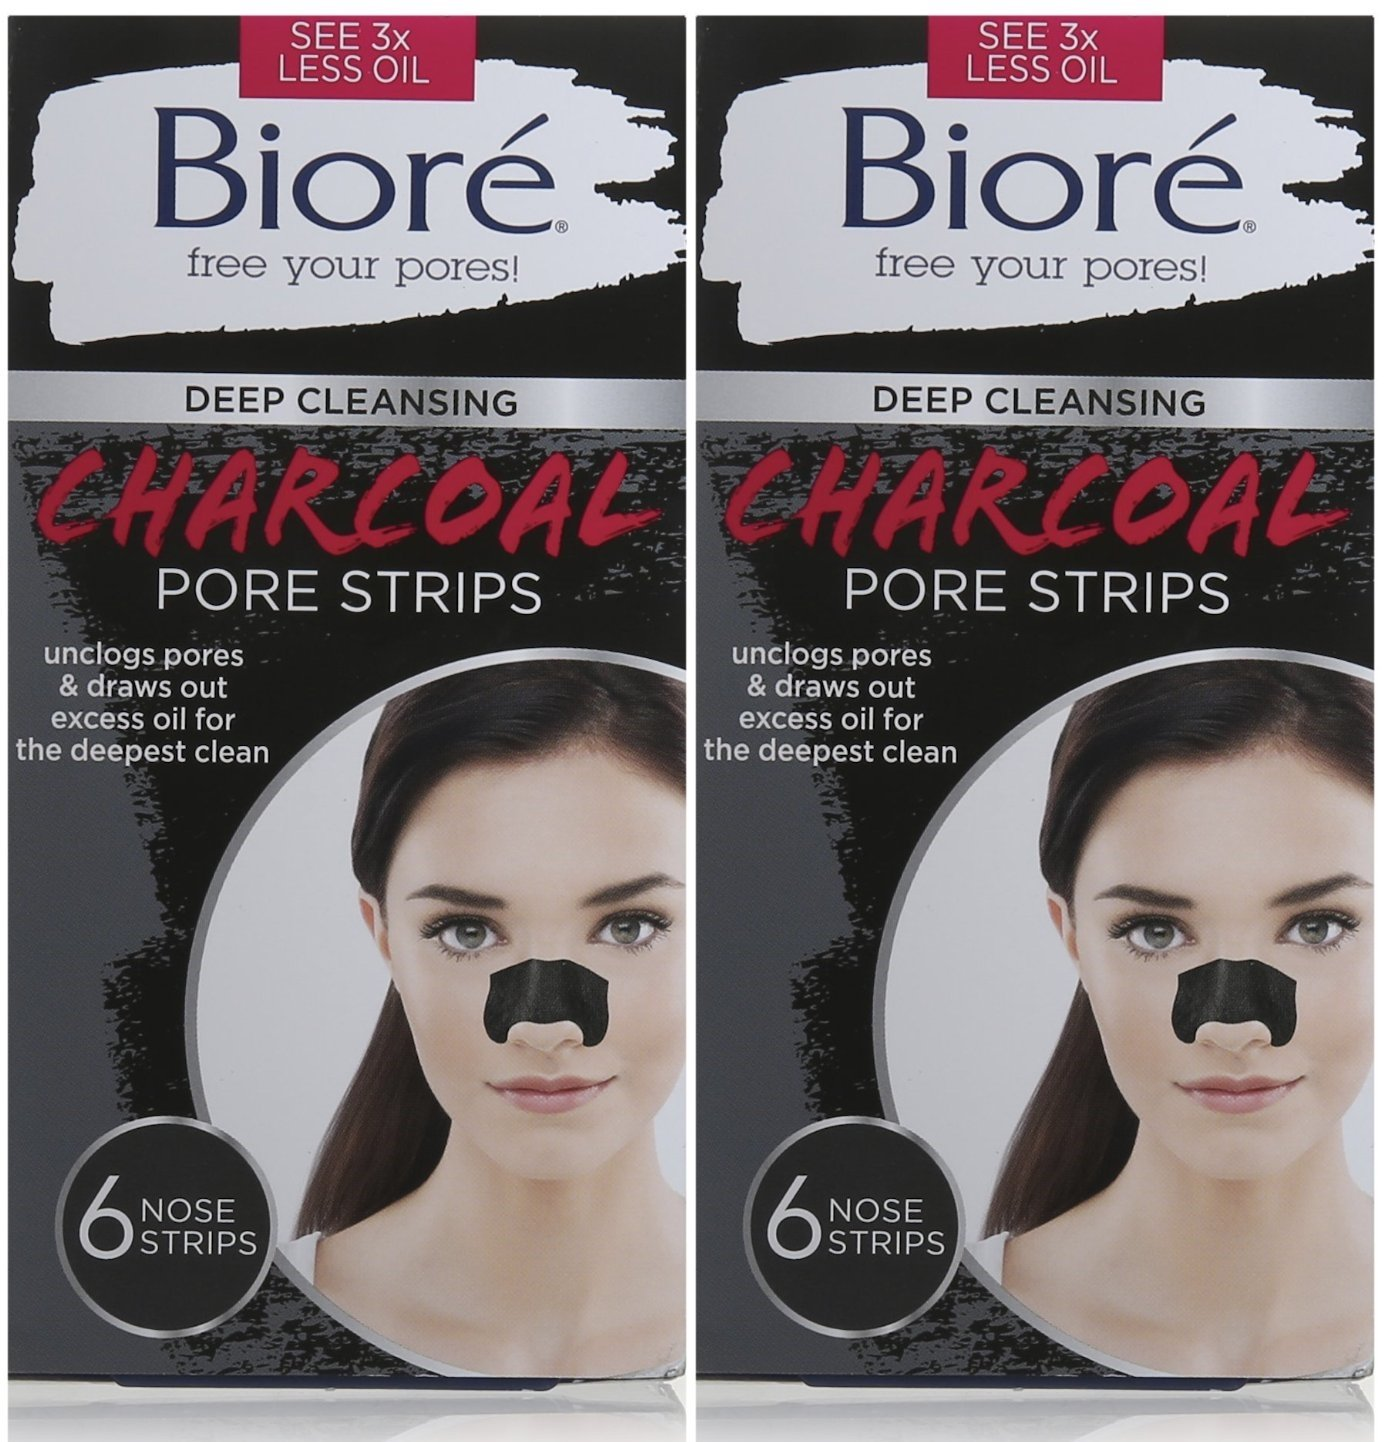 Biore Deep Cleansing Pore Strips, Charcoal, 6 Count(Pack of 2)